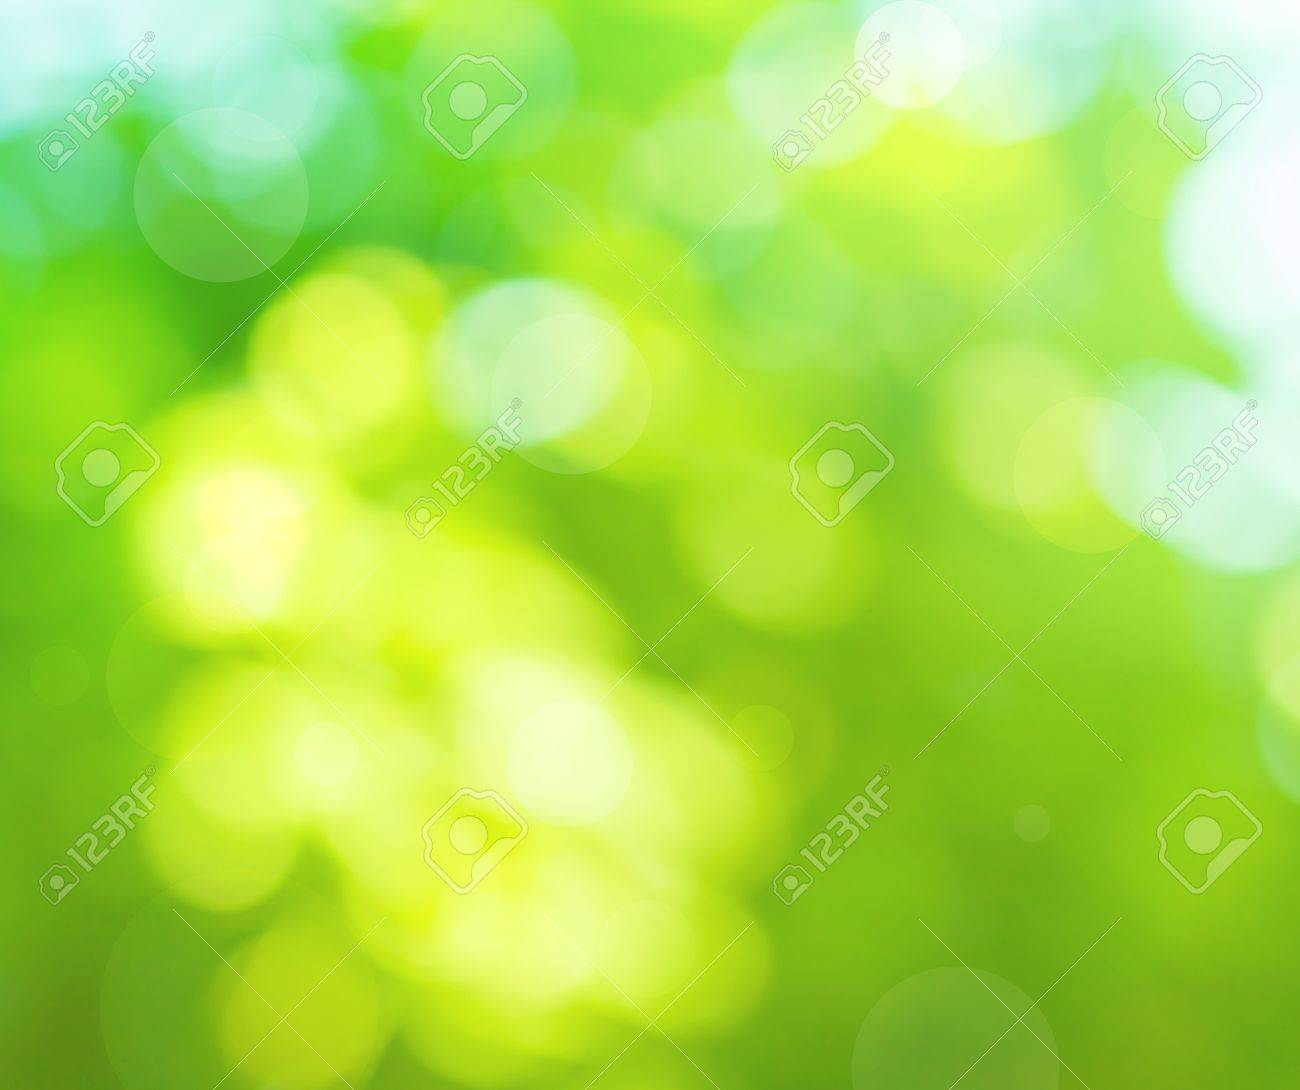 colorful blurred background in the green colors, the bokeh effect Stock Photo - 13645982